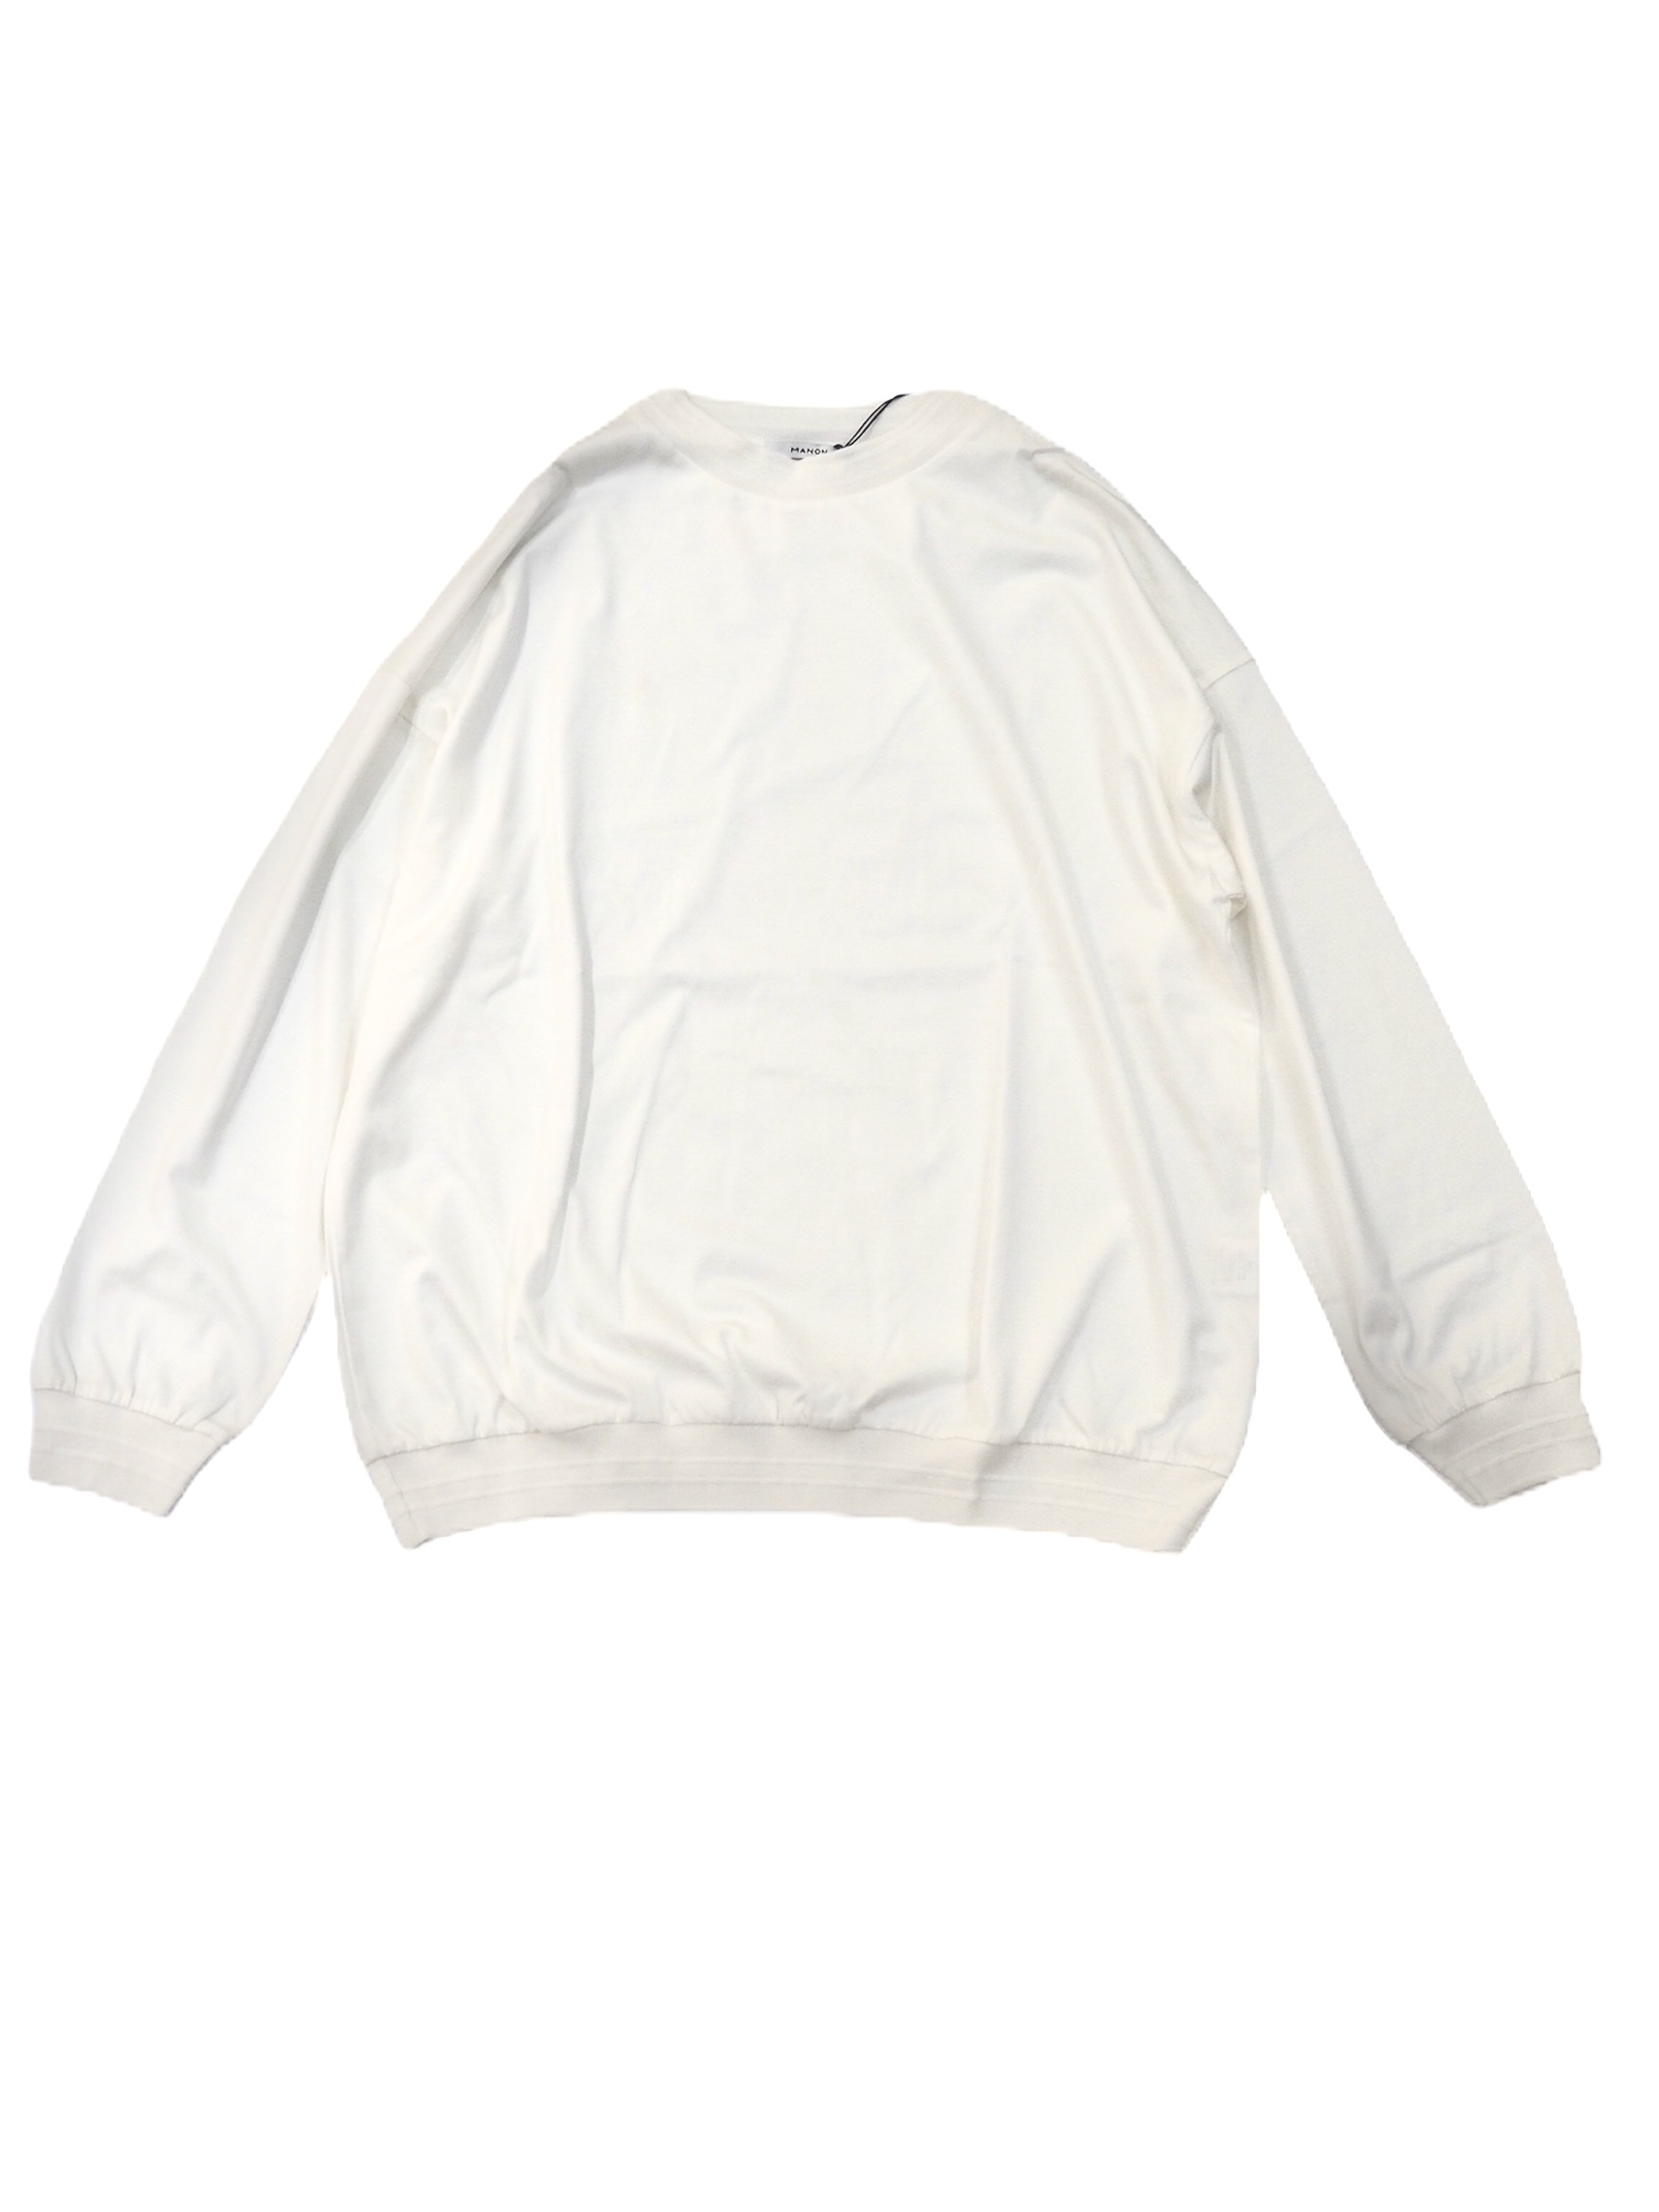 【MANON】LONG SLEEVE RIB TEE